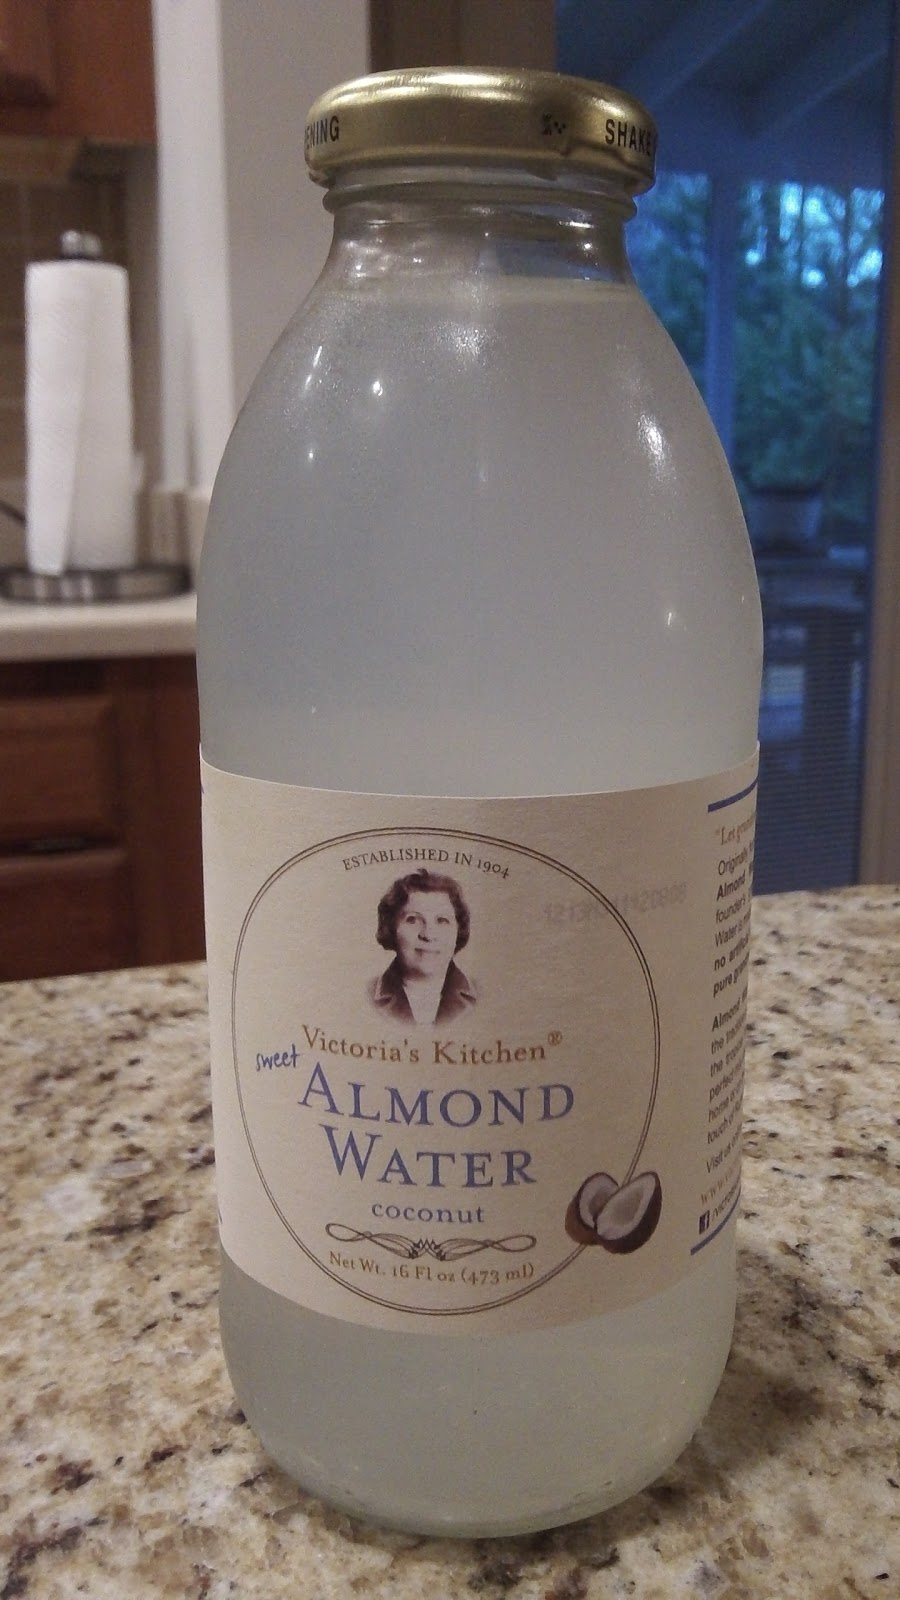 victorias kitchen almond water coconut - Victorias Kitchen Almond Water